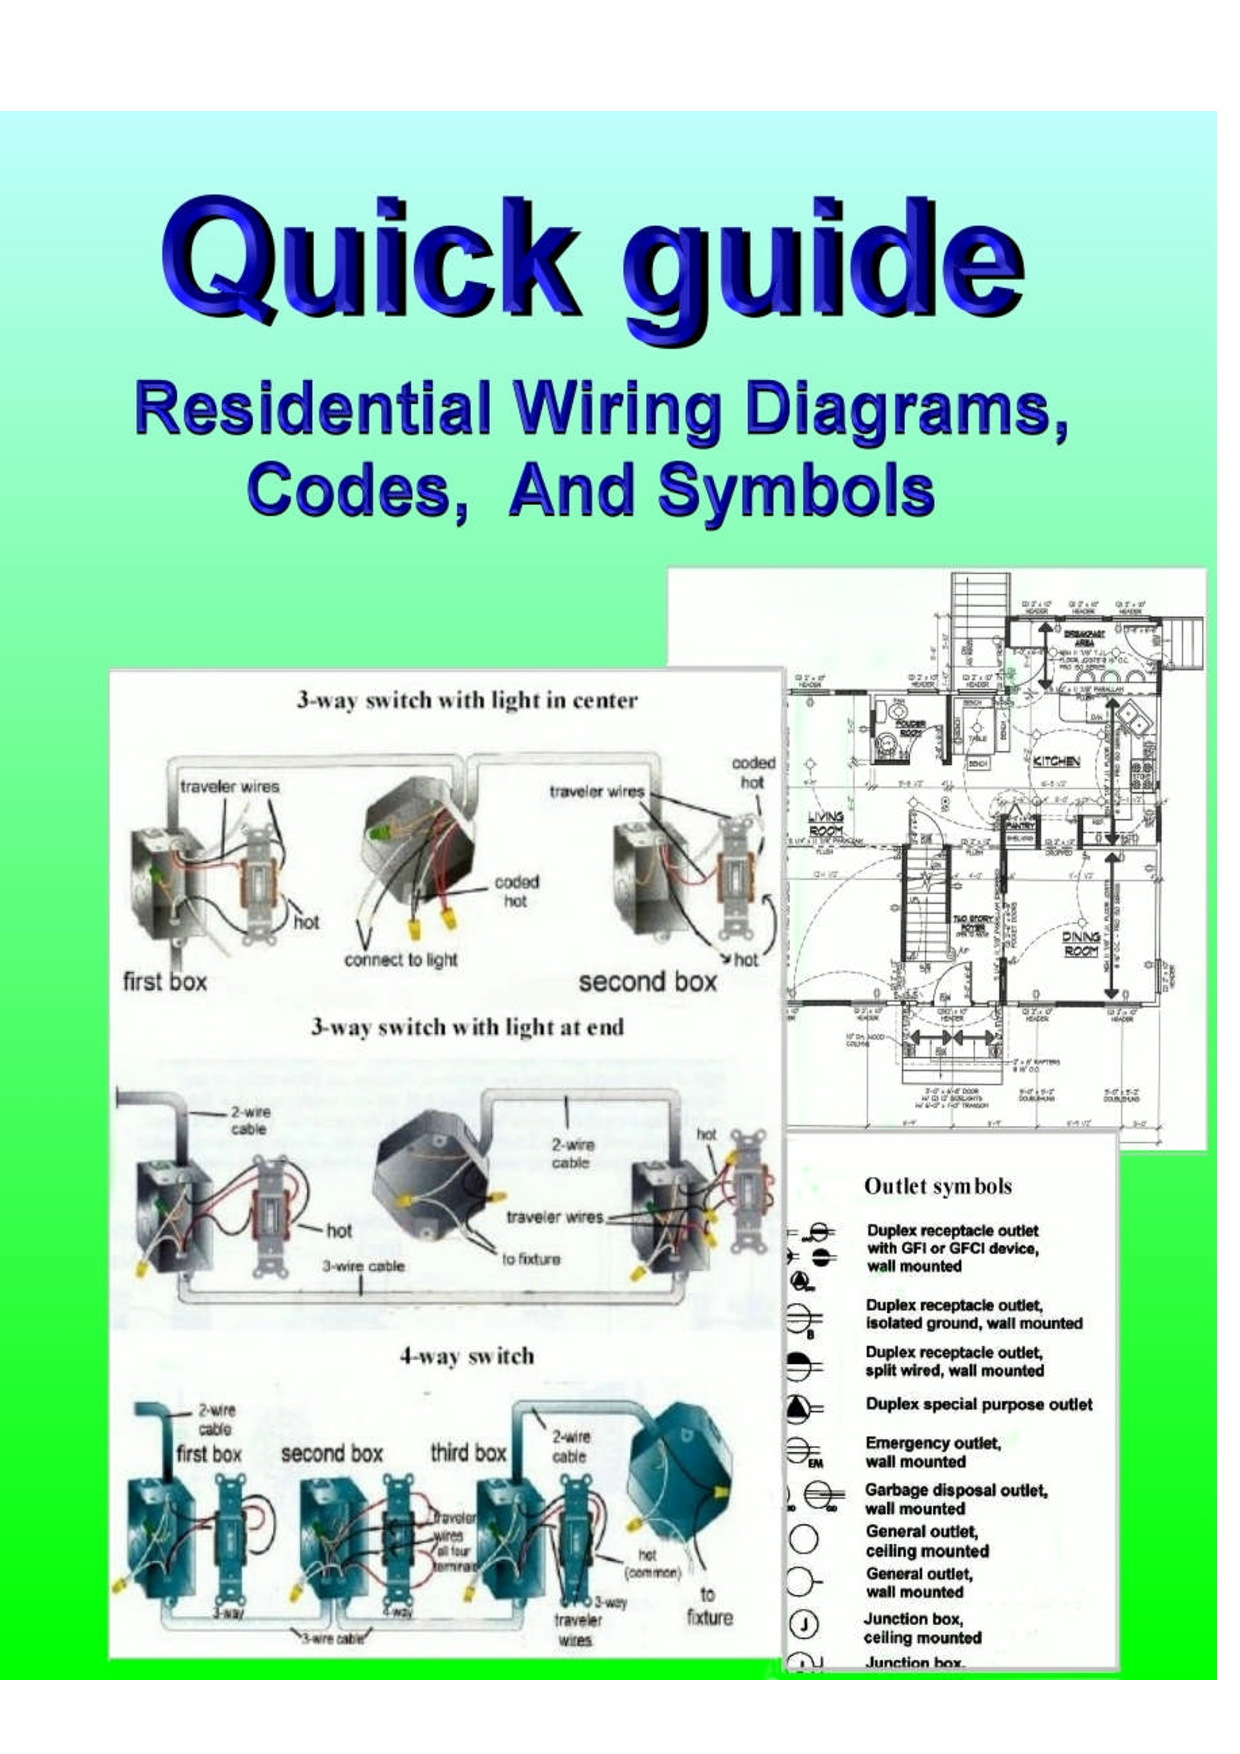 home electrical wiring diagrams informational pinterest rh pinterest com residential electrical wiring book download residential electrical wiring book pdf